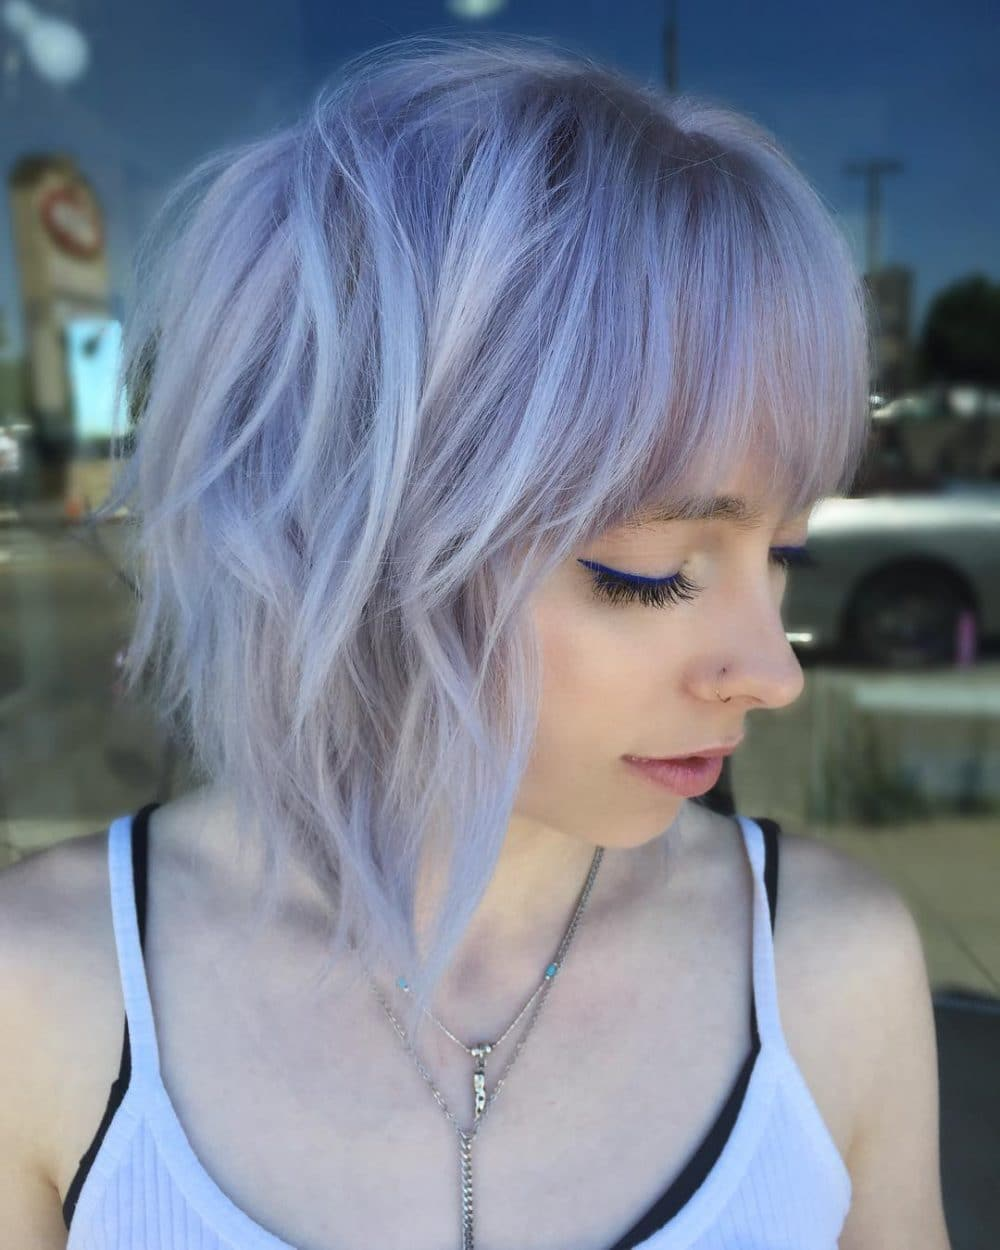 A disheveled purple shag haircut for short hair